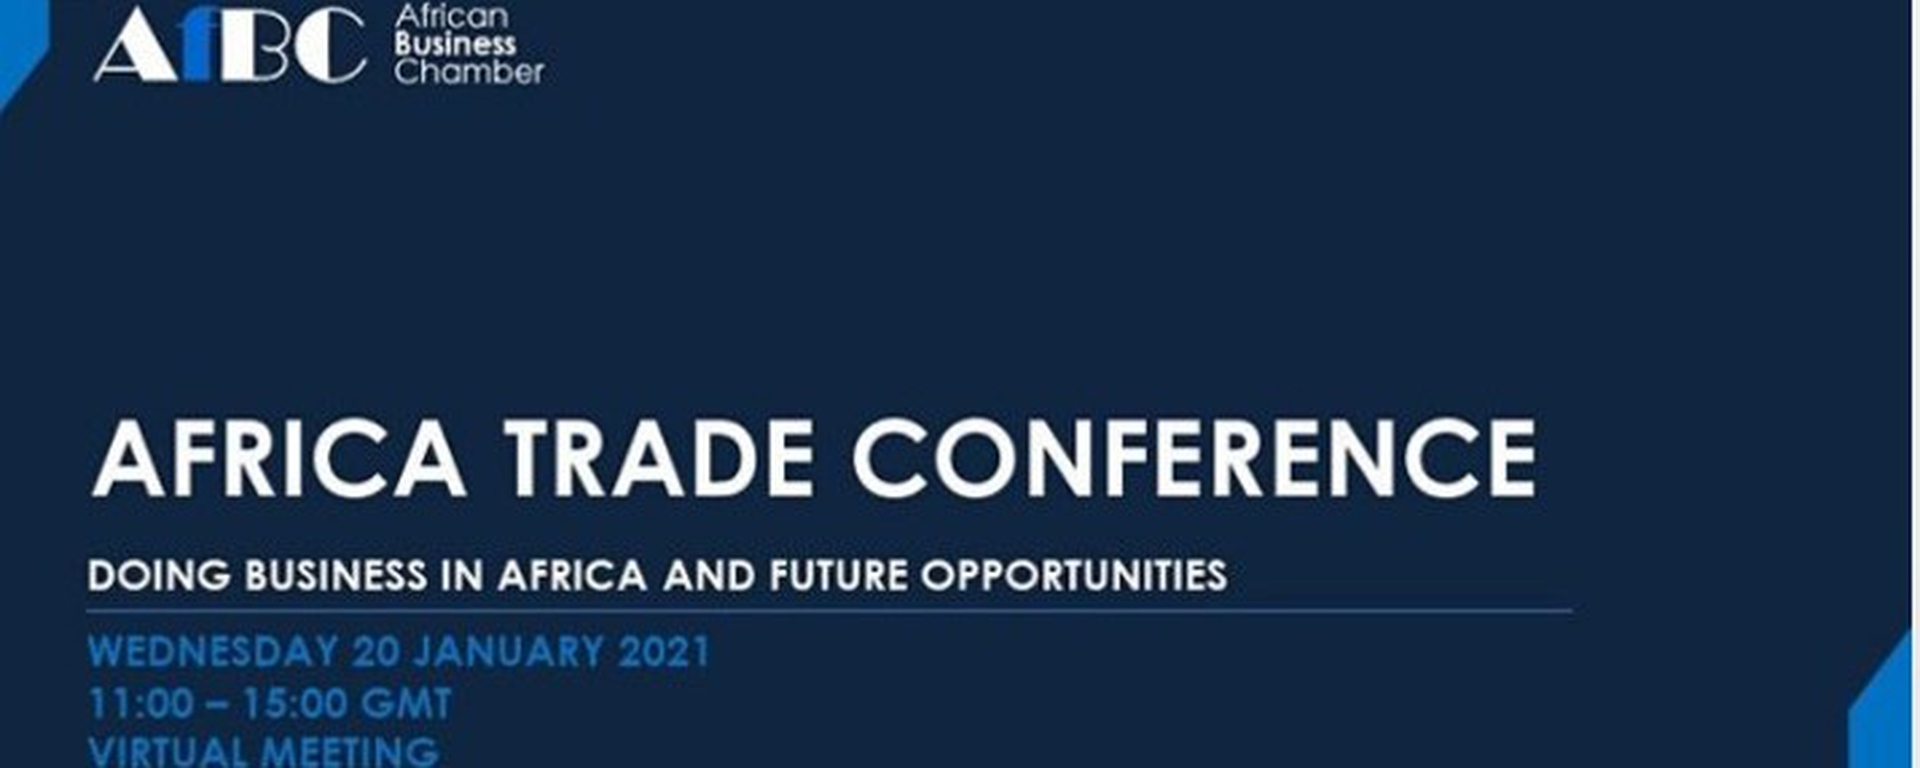 African Business Chamber - Africa Trade Conference Movemeback African event cover image